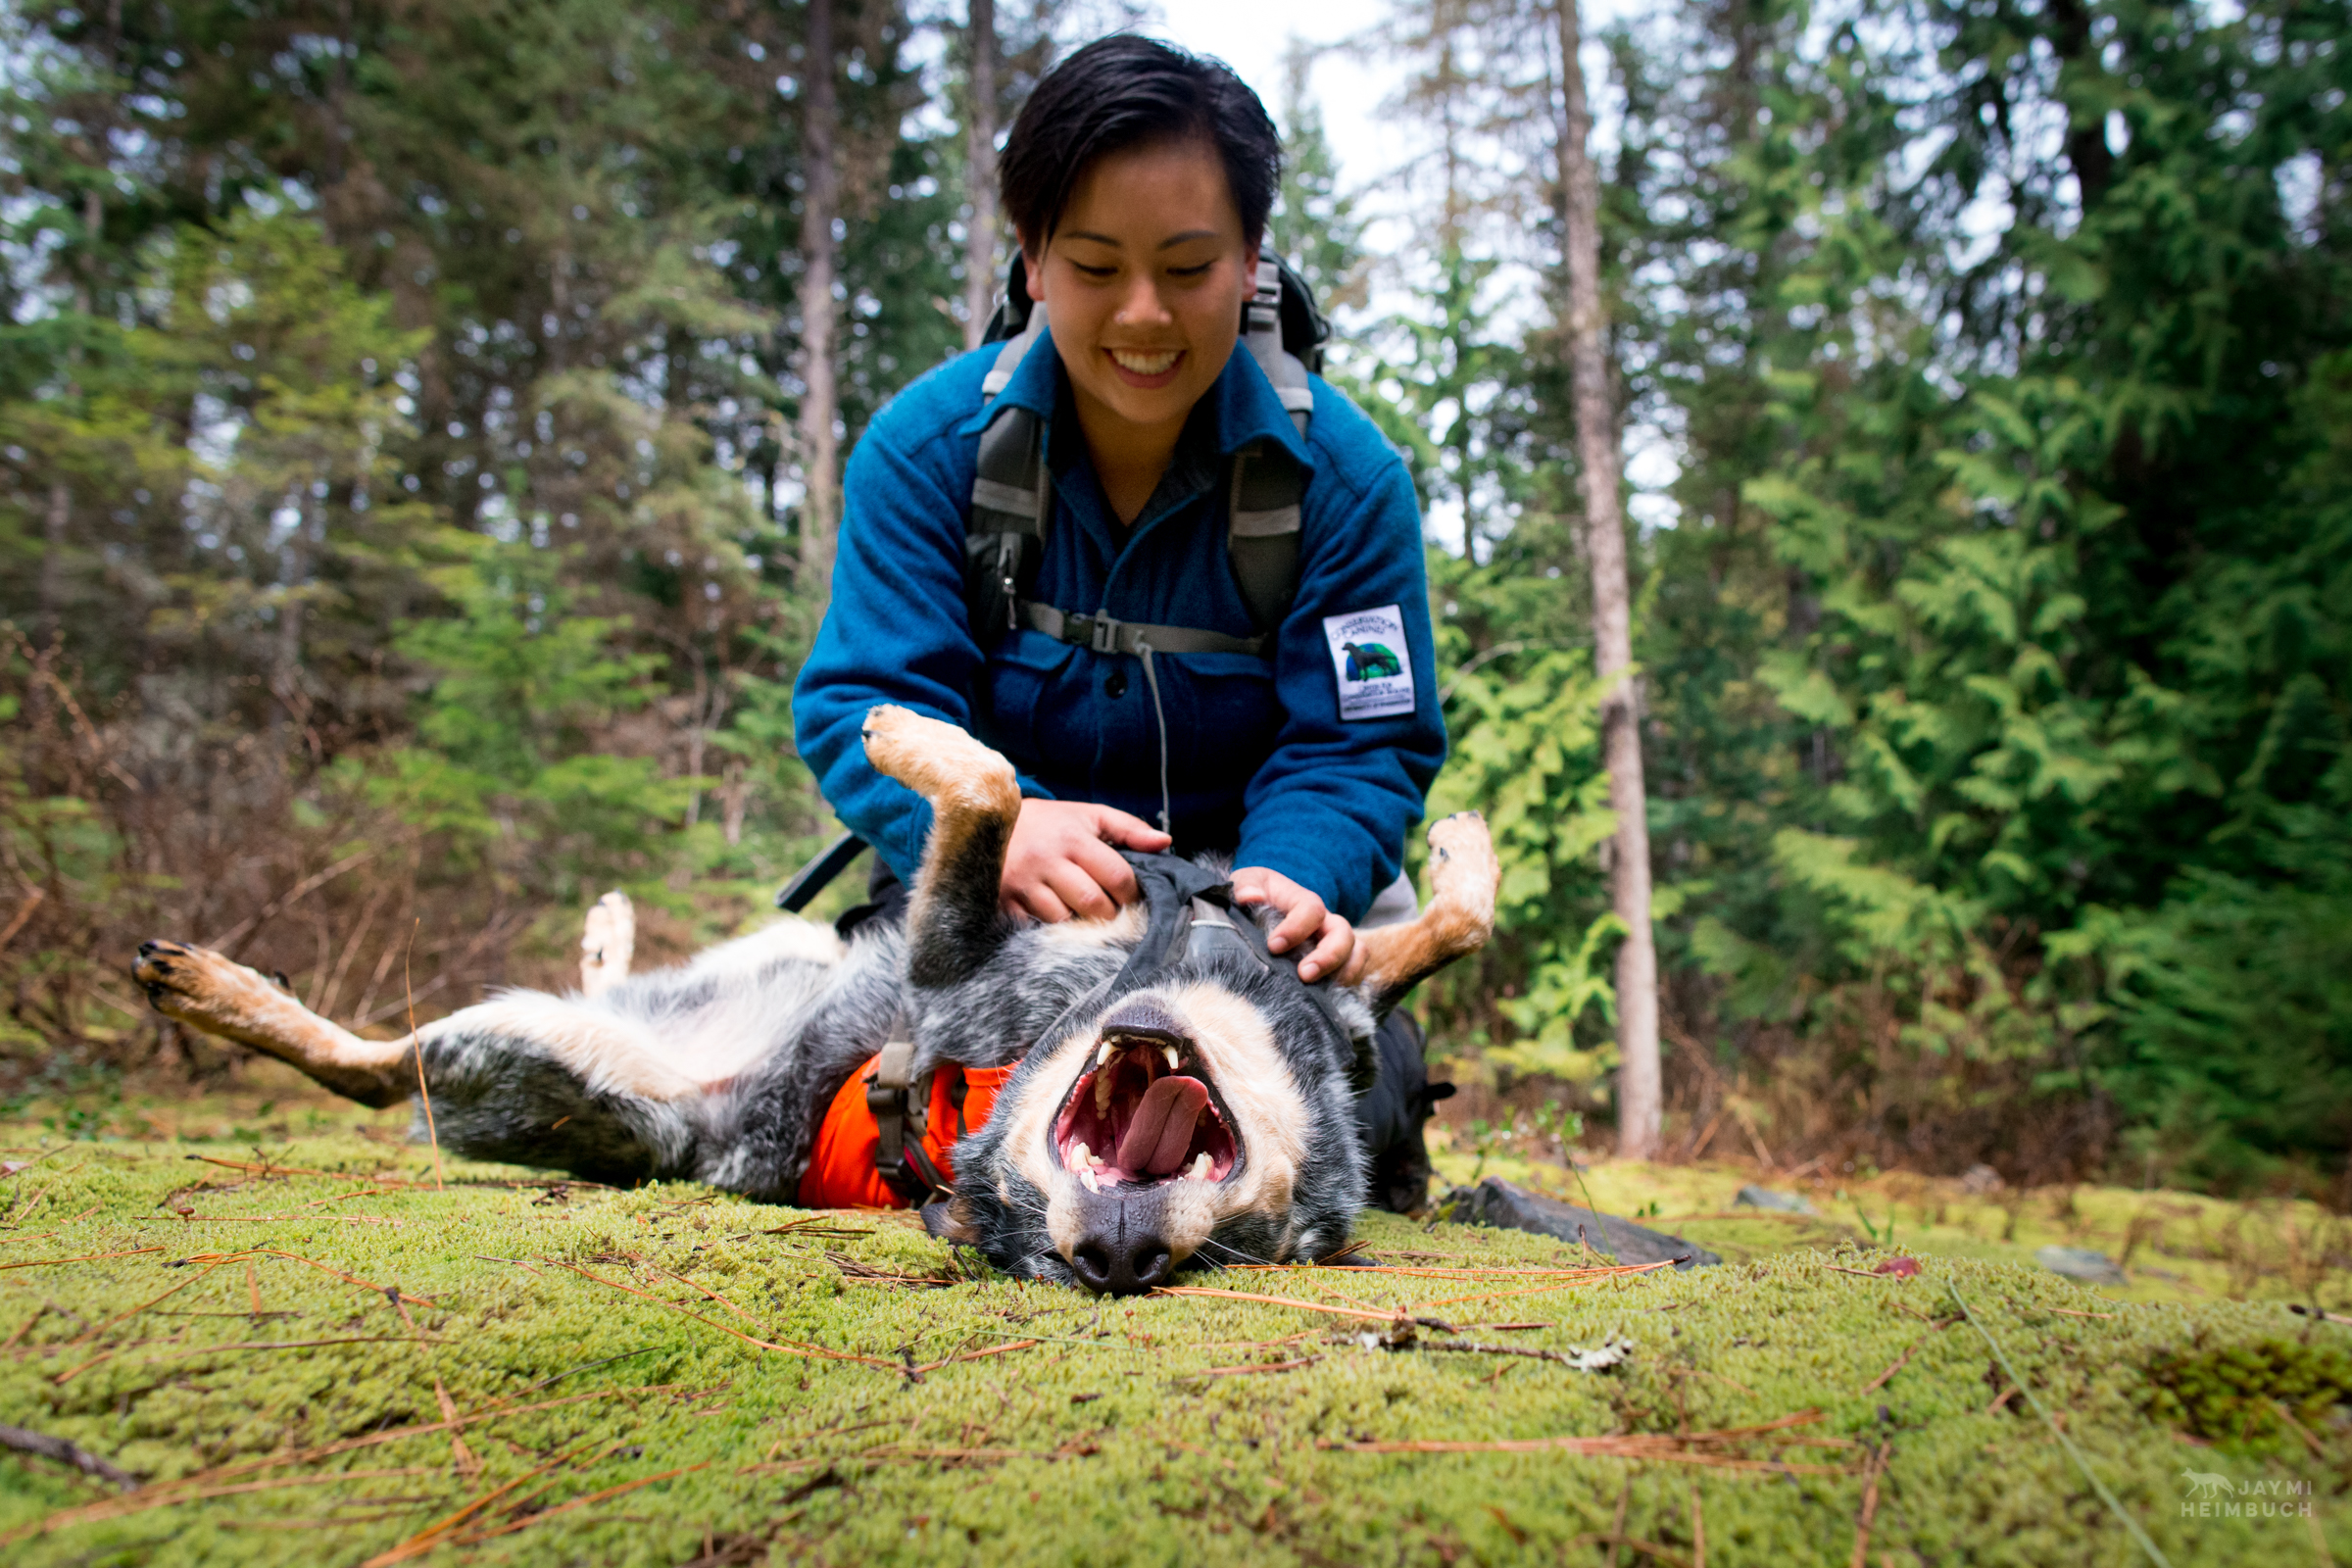 Field technician Colette Yee playing with scent detection dog Jack, Conservation Canines, University of Washington's Center for Conservation Biology, Washington